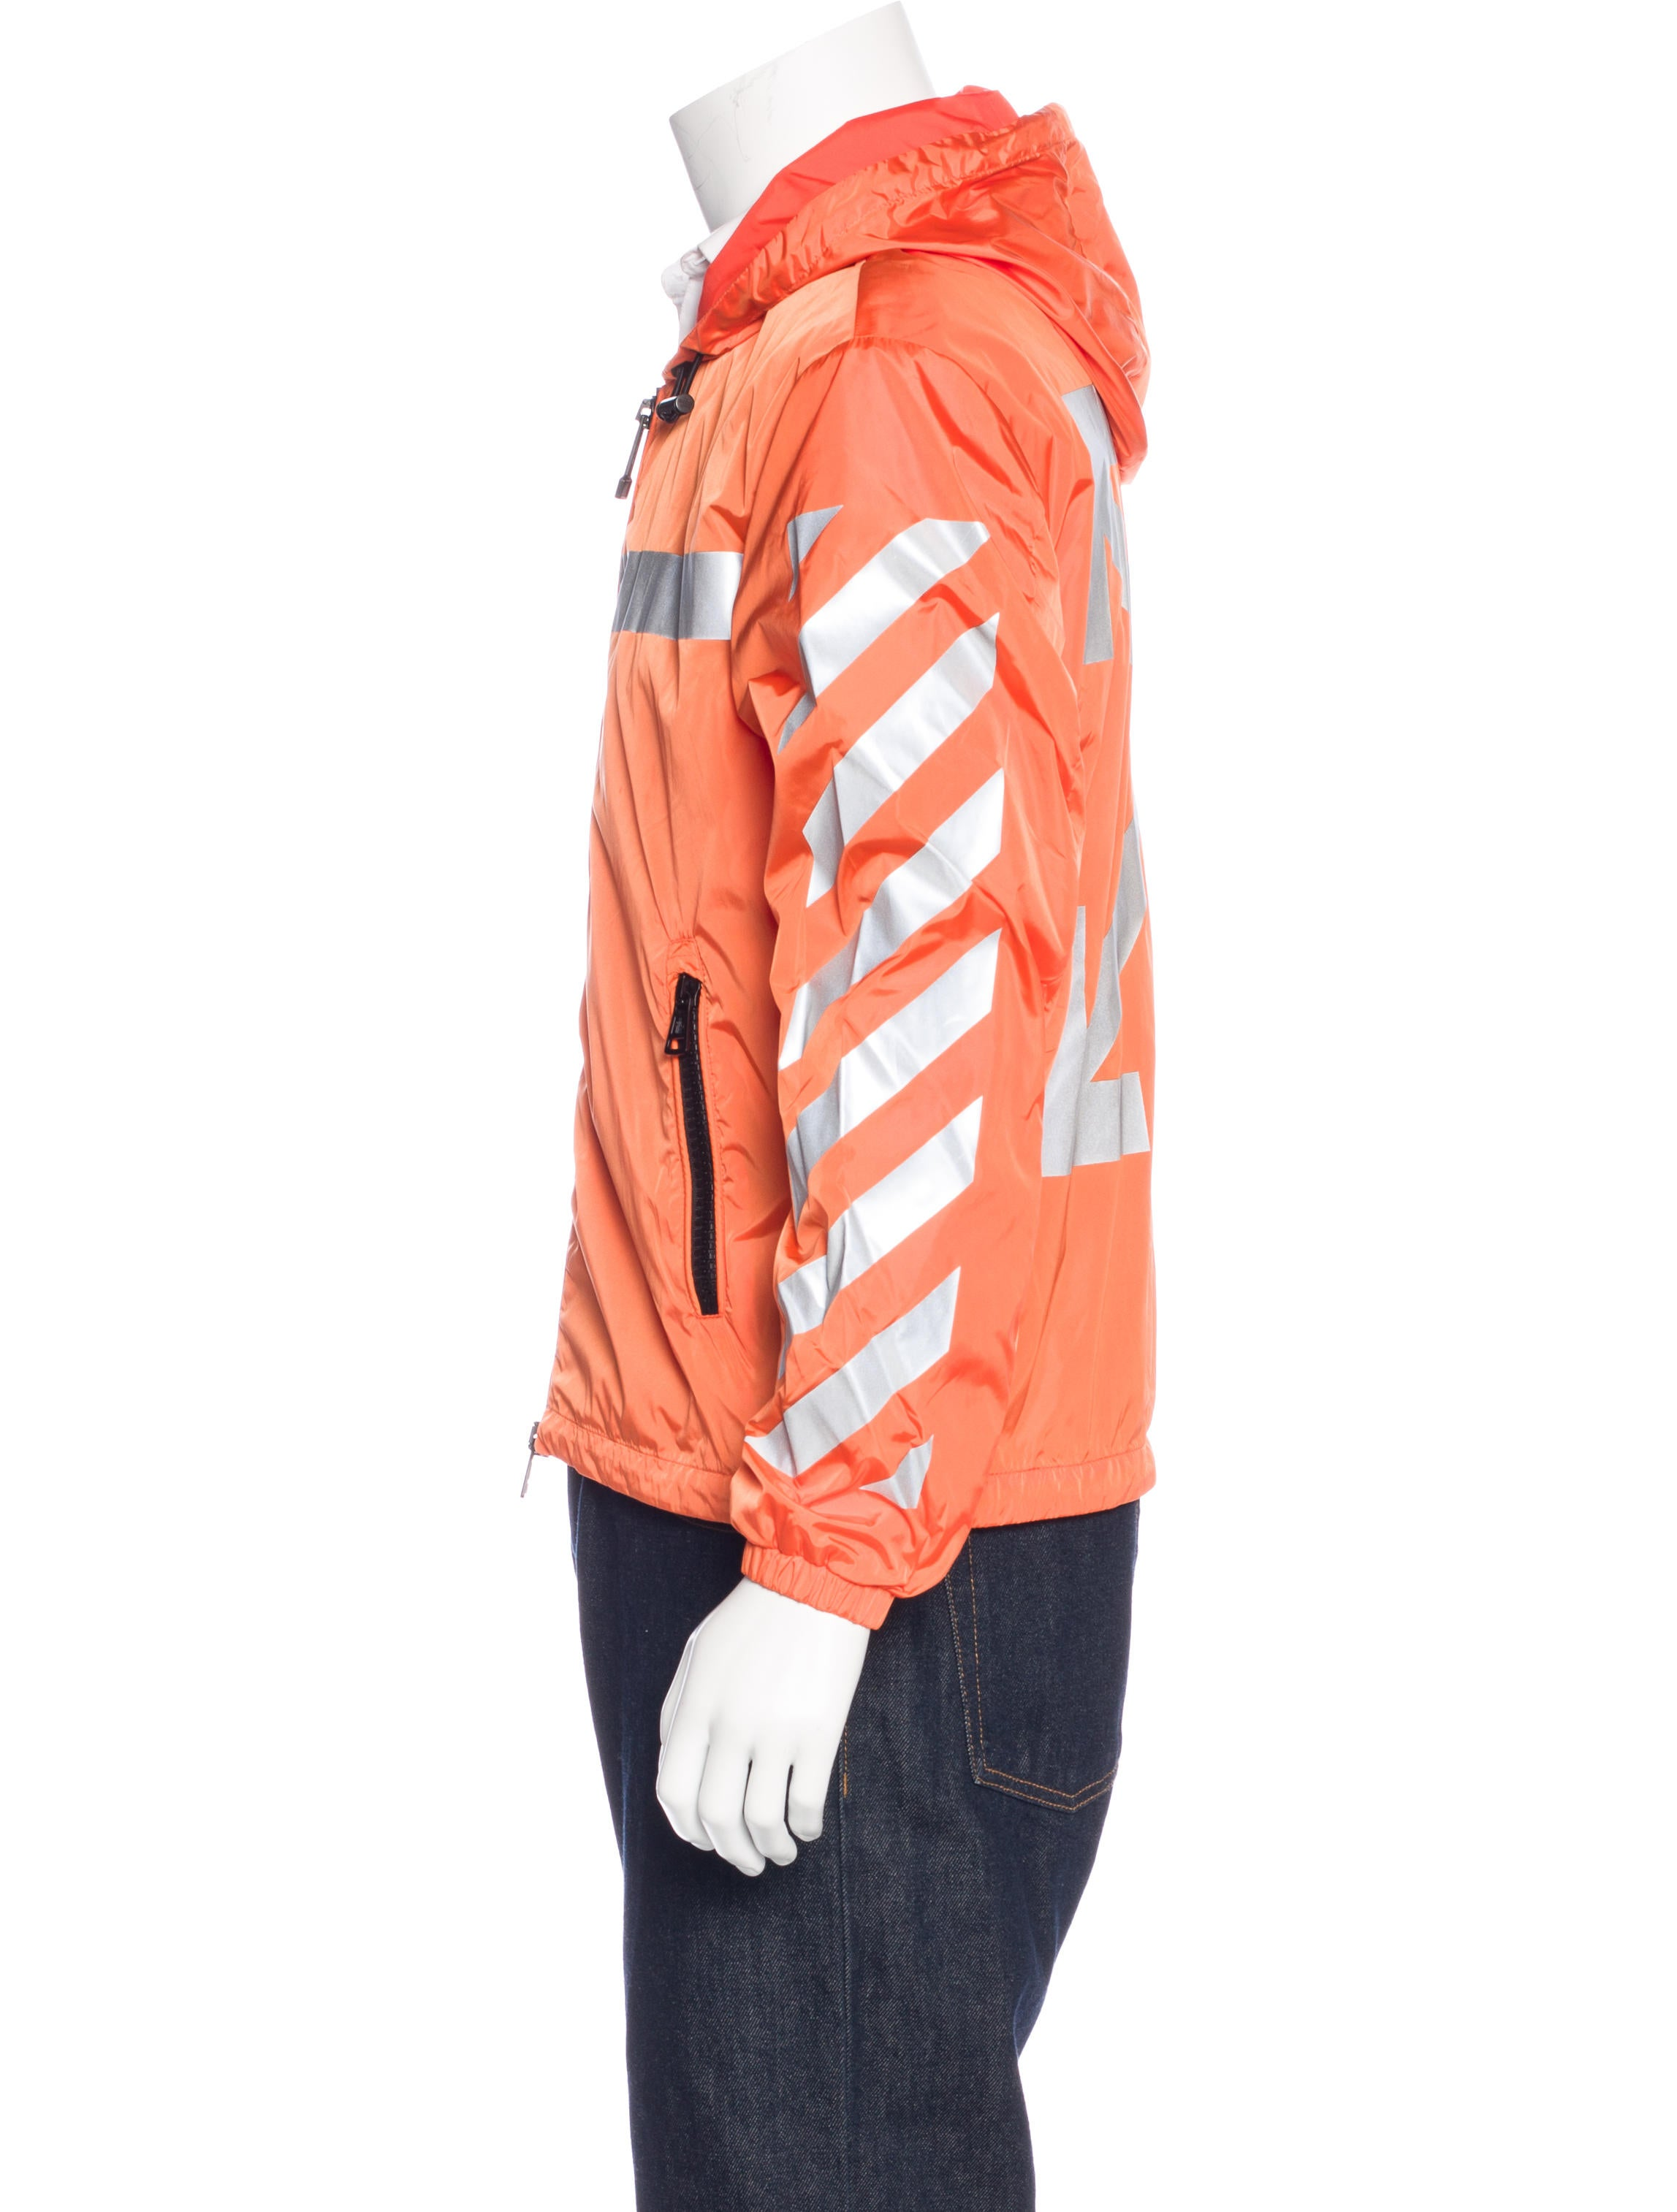 Moncler x Off White | The RealReal